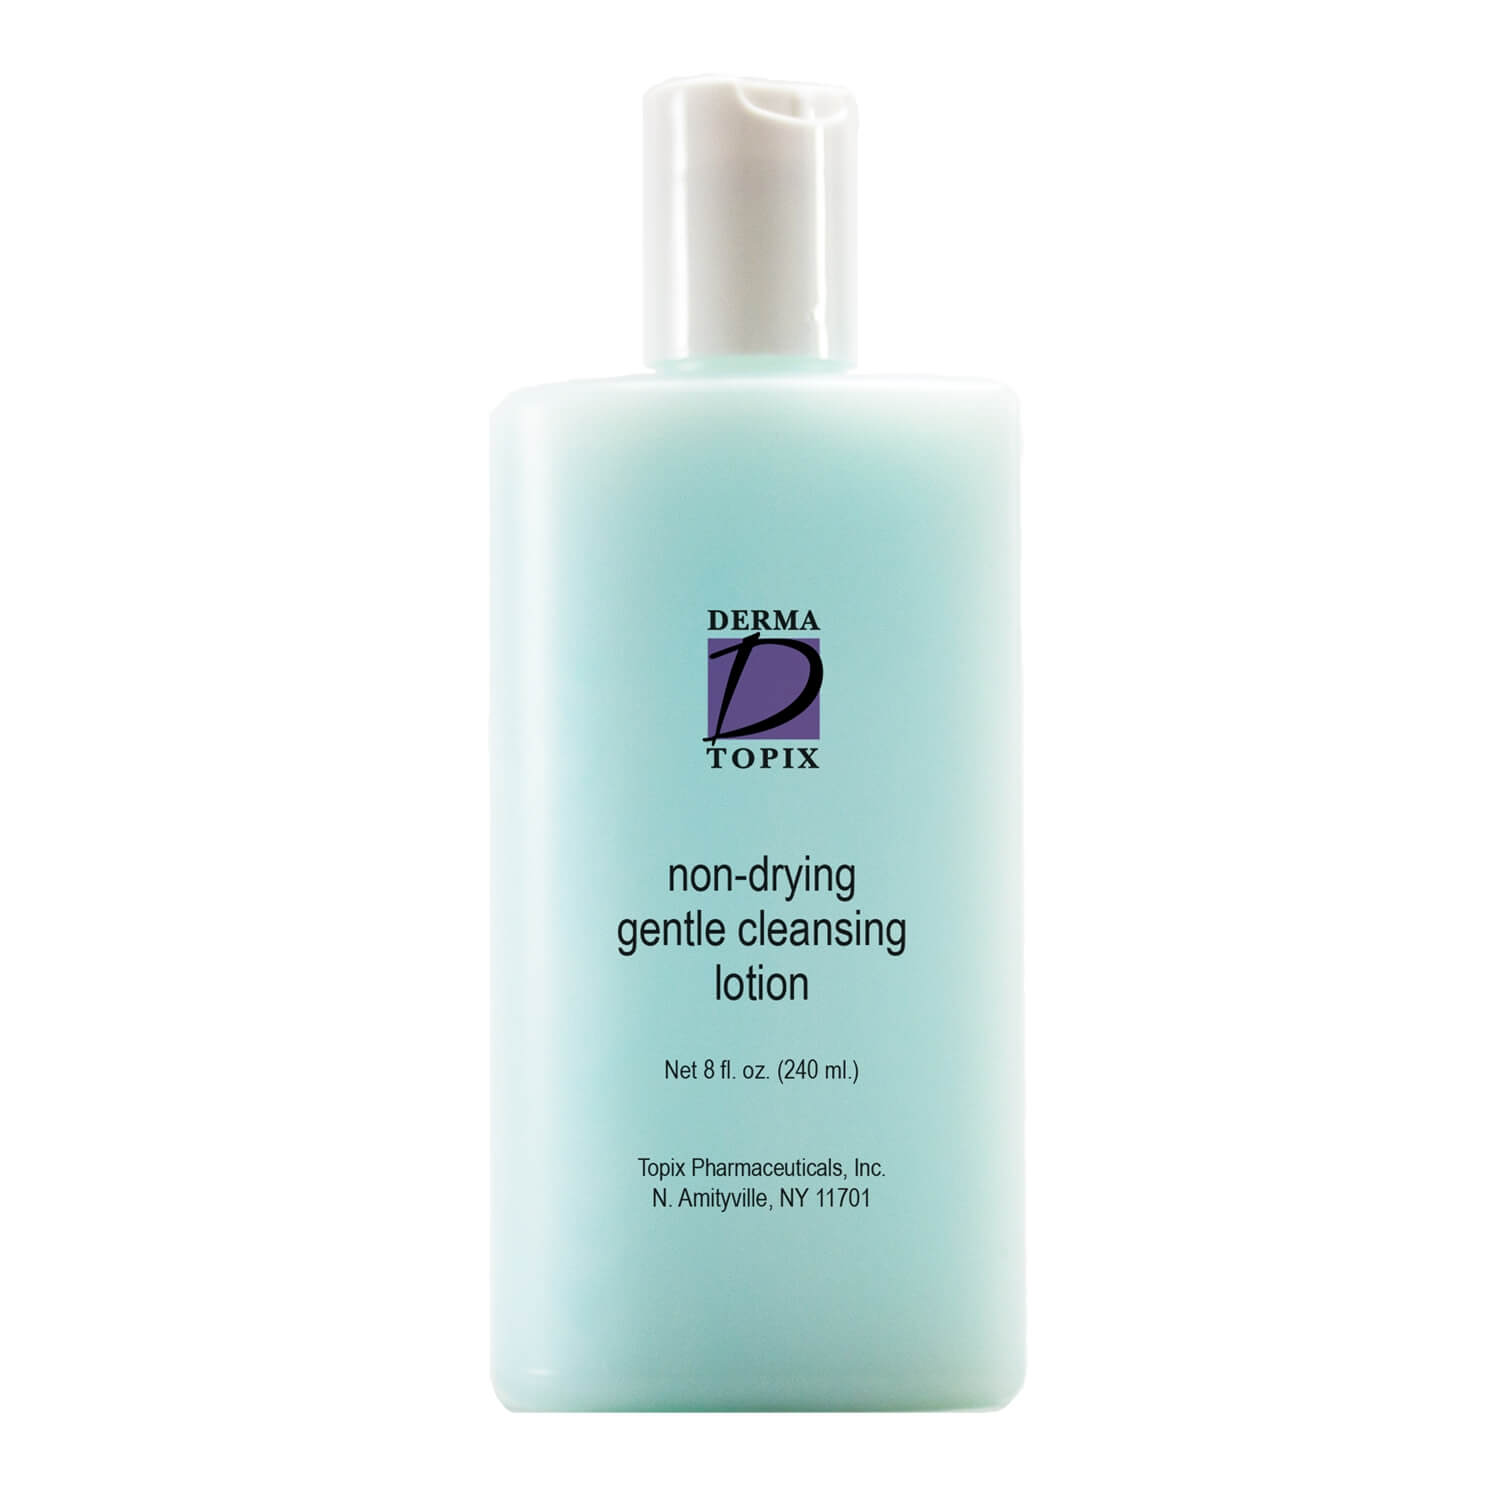 DermaTopix Non-Drying Gentle Cleansing Lotion